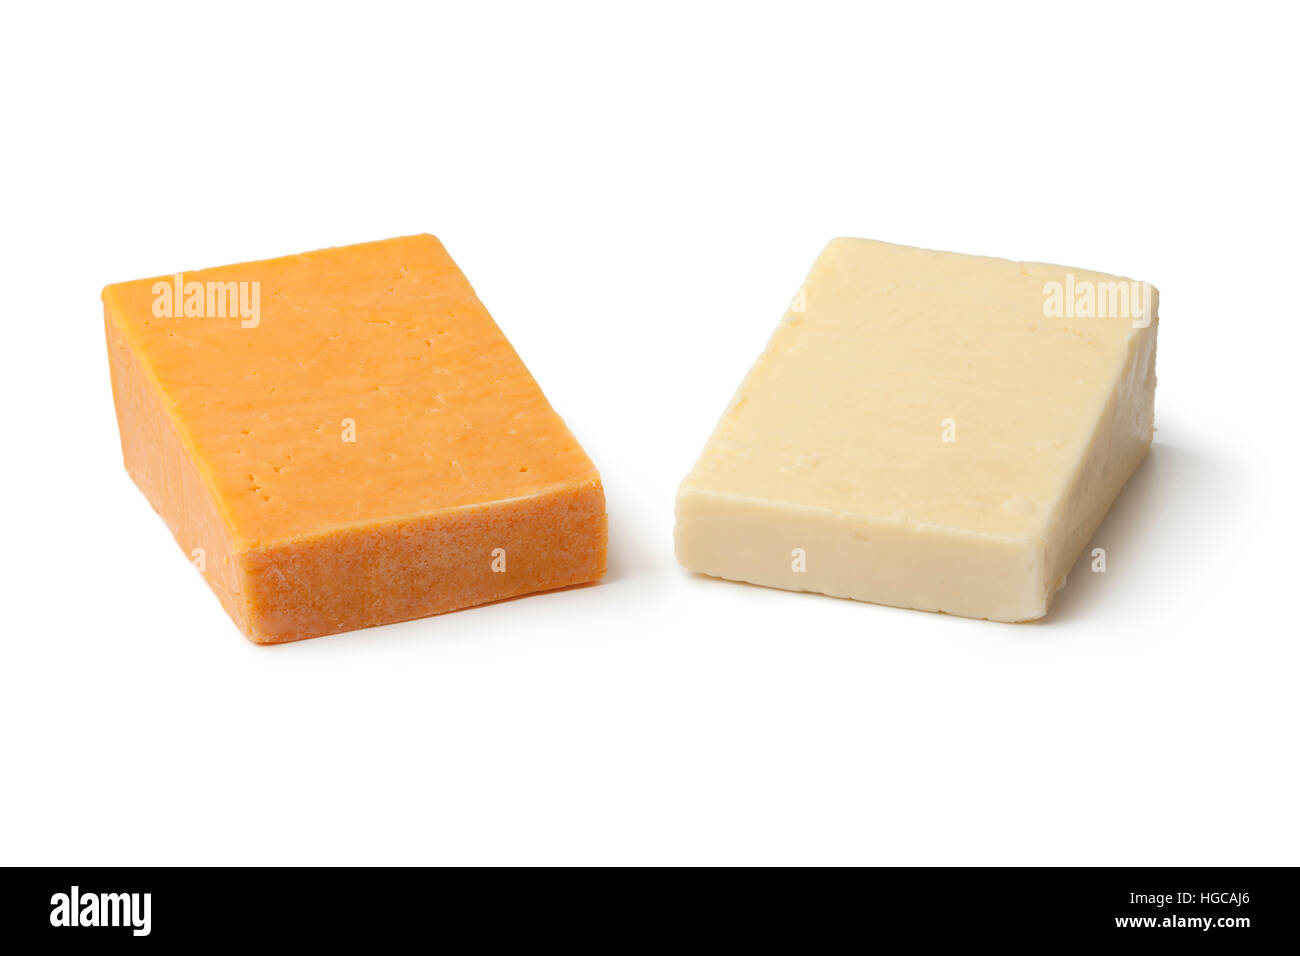 Pieces of traditional english cheese, red leicester and mature cheddar on white background - Stock Image